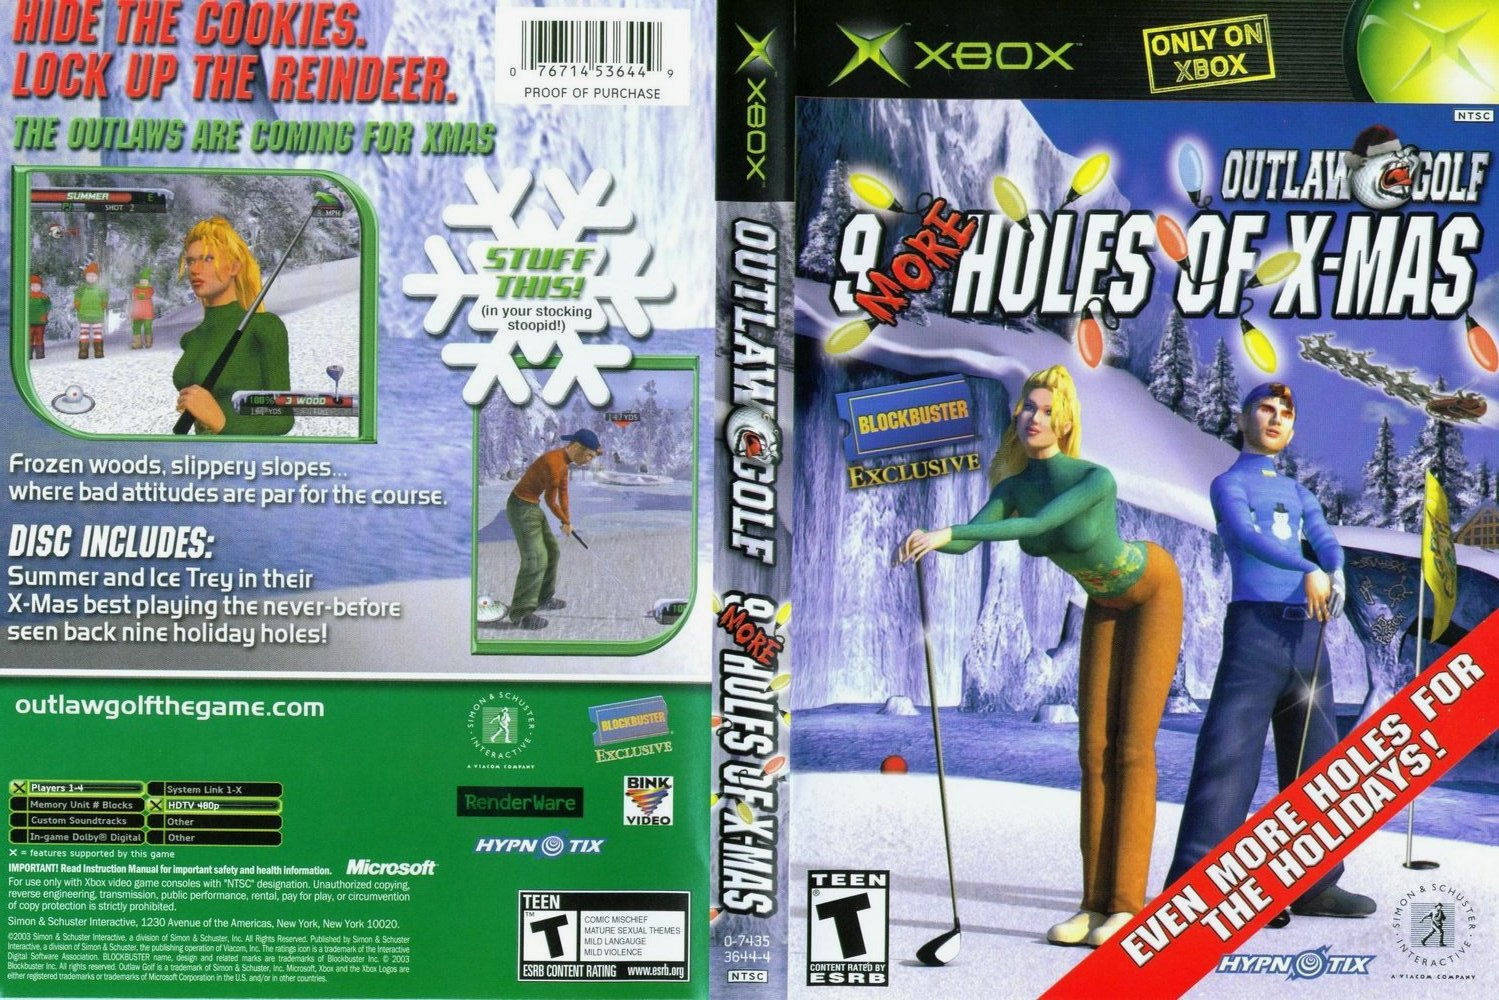 Outlaw golf 2 sex erotic image